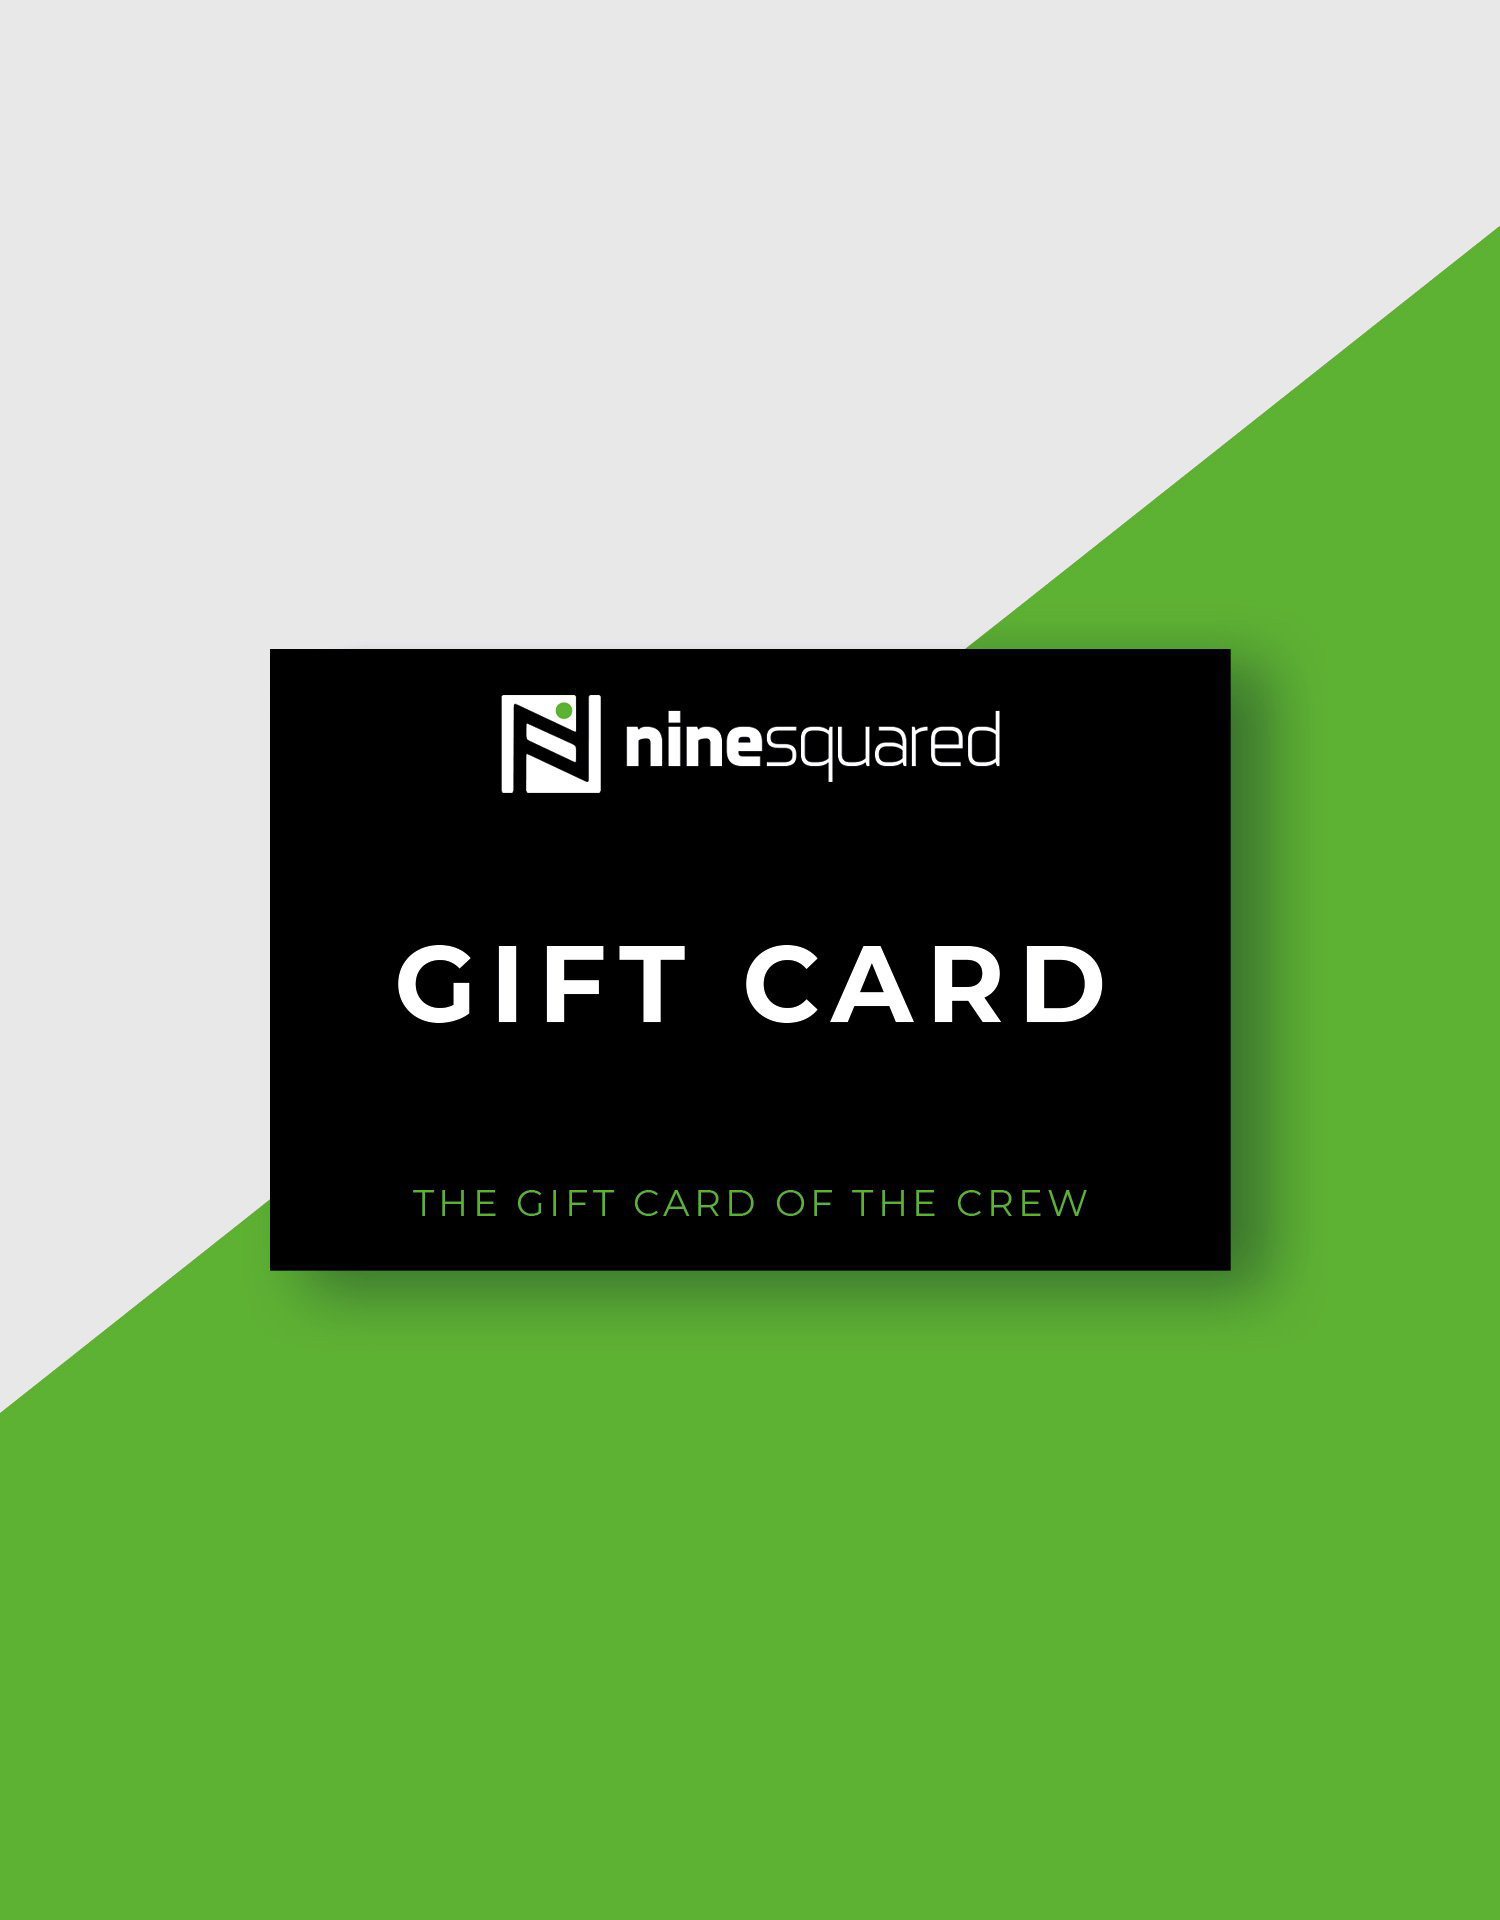 gift card ninesquared